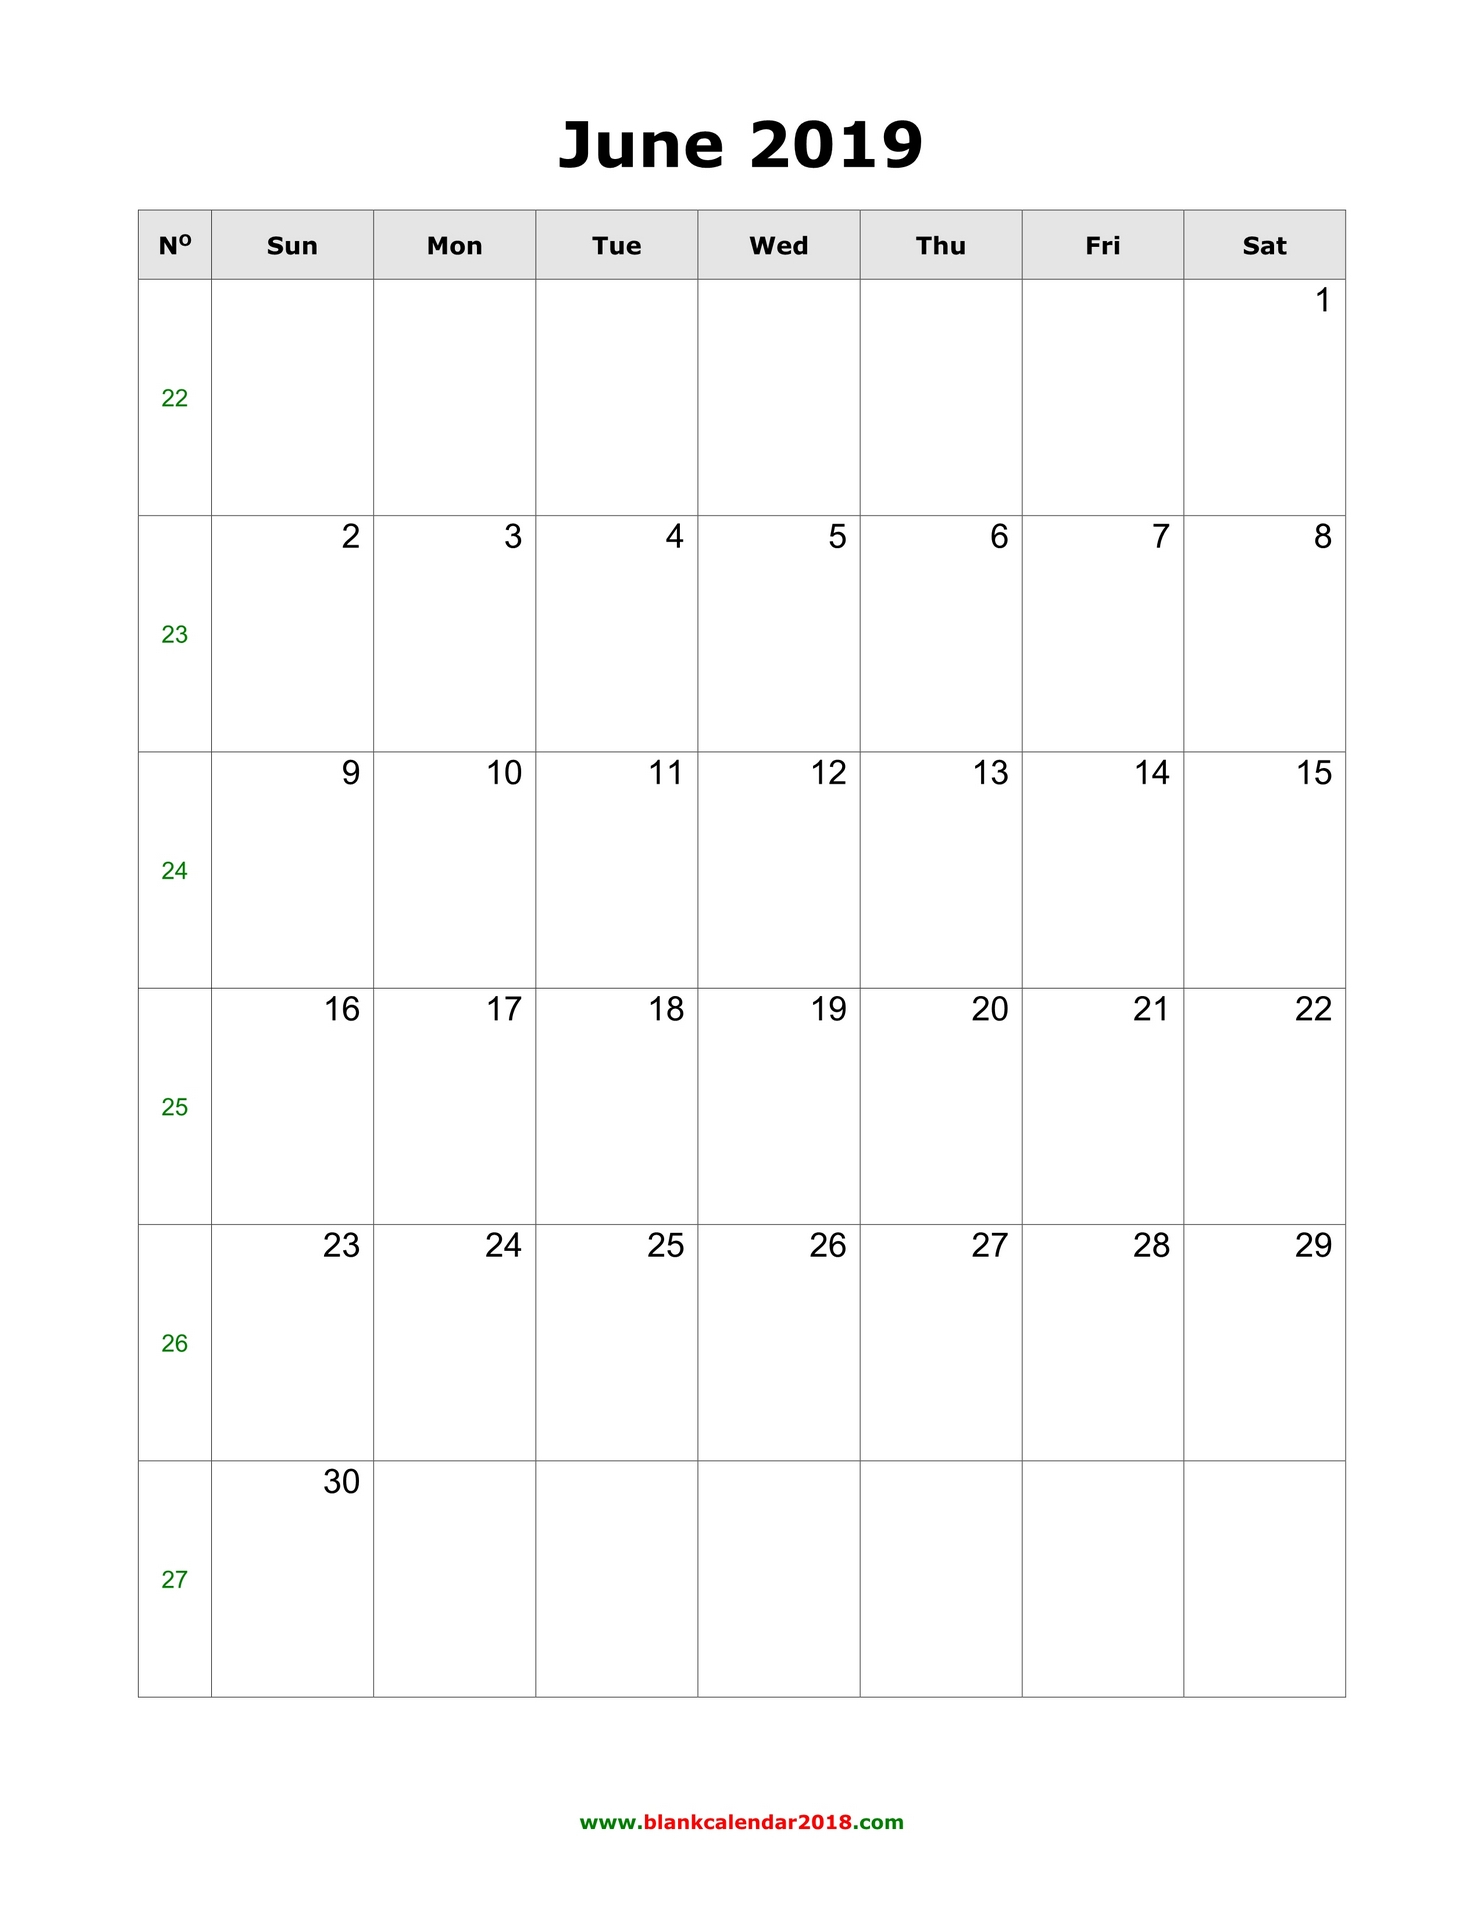 Blank Calendar For June 2019 Inside Where To Find Google Printable Amendable Calander